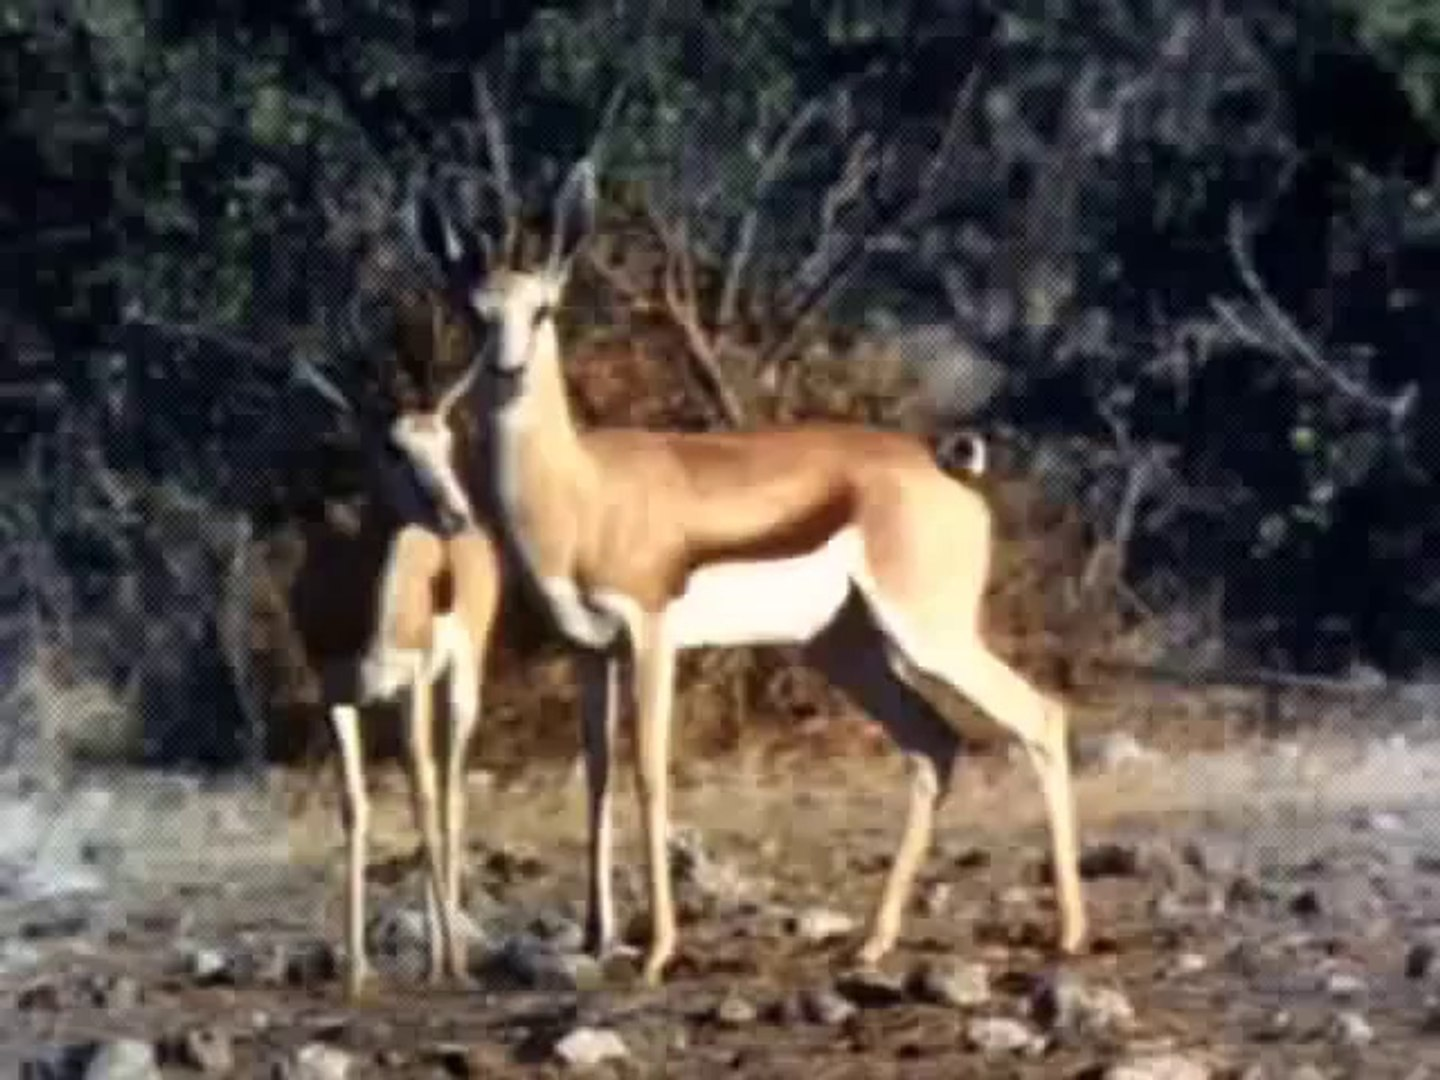 Must Watch - Amazing Deadly Fight between Wild Animals, Dangerous Deadly Fight Between Animals